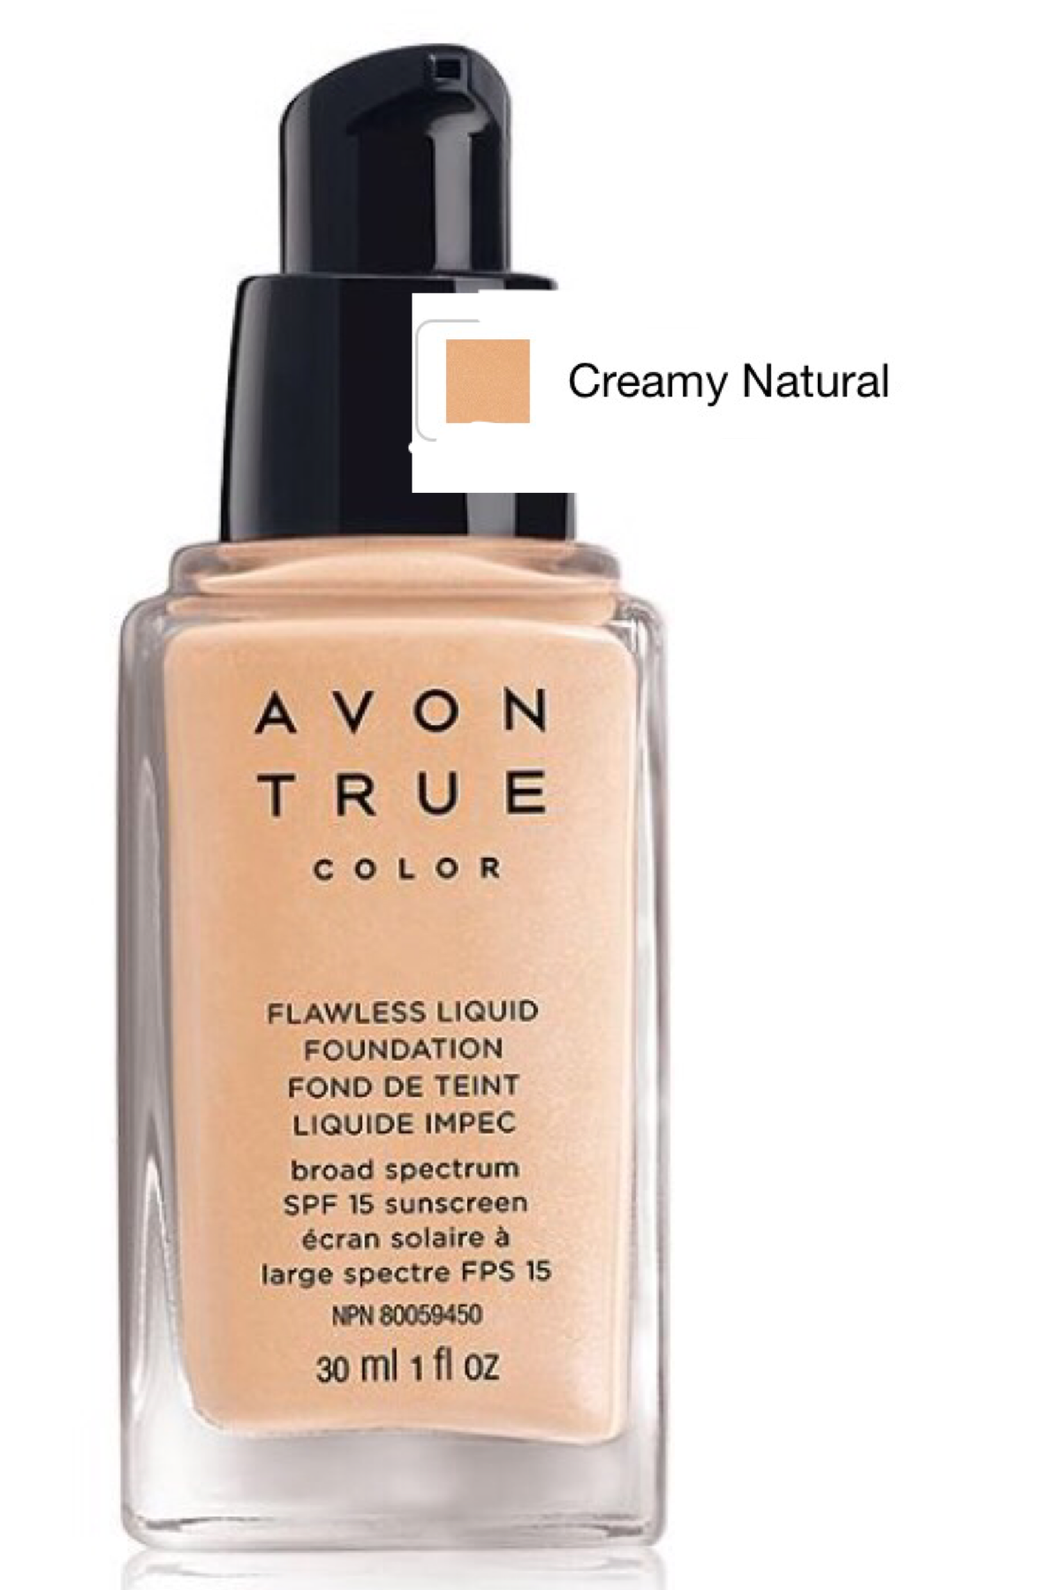 Creamy Natural Flawless Liquid Foundation 30ml